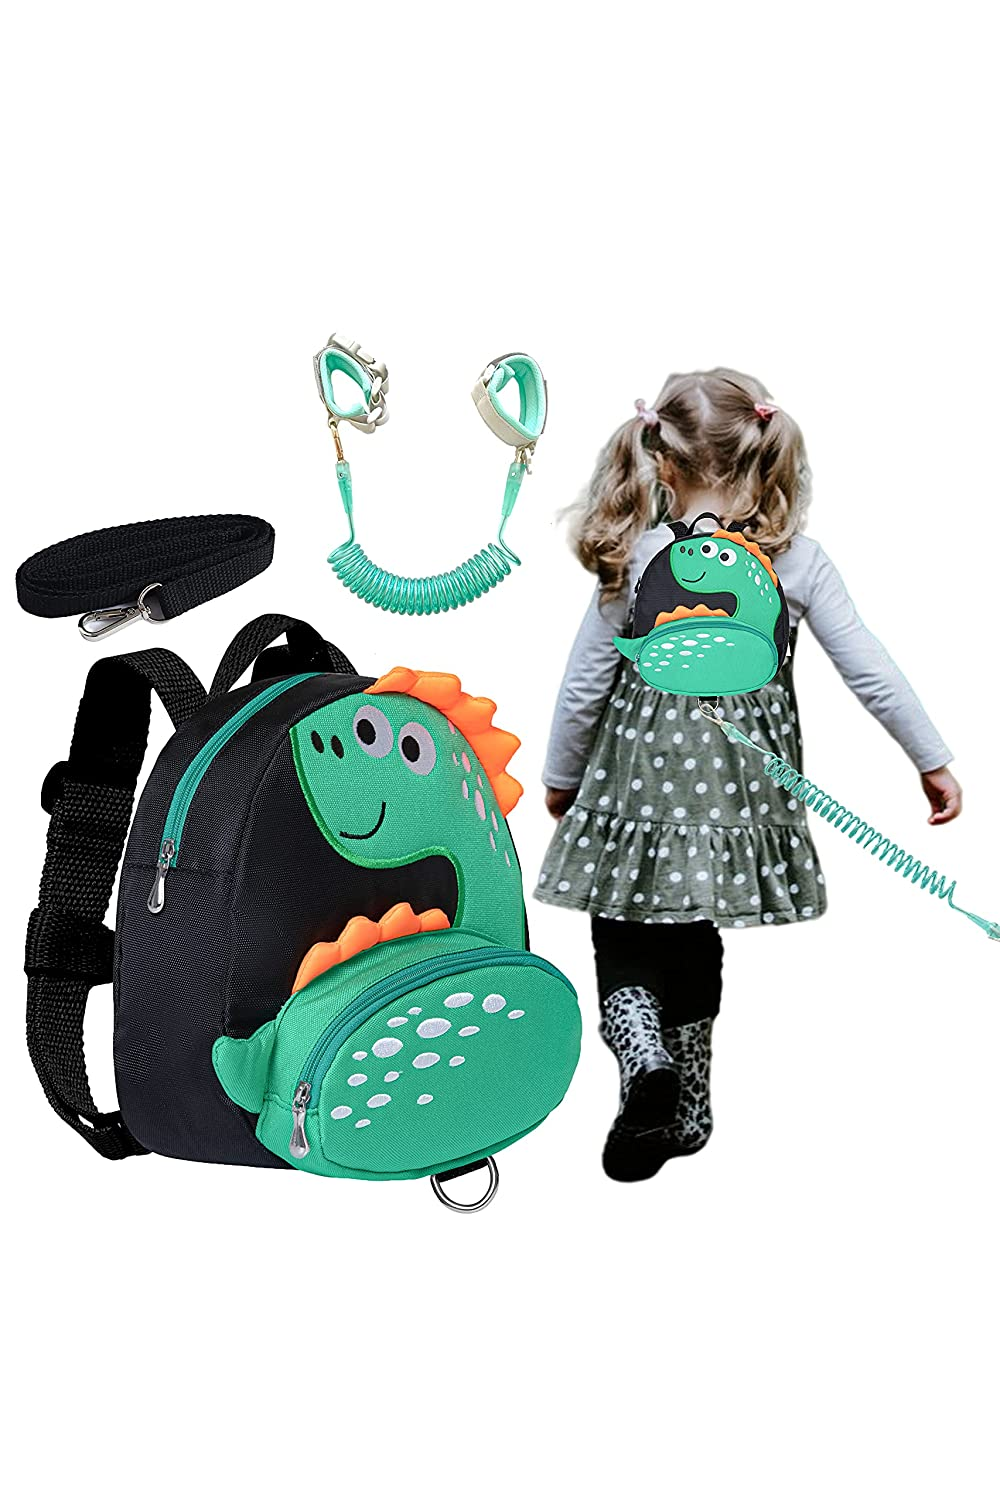 Dinosaur Toddlers Leash Backpacks with Anti-Lost Wristband Child Kids Wrist Link (Green)